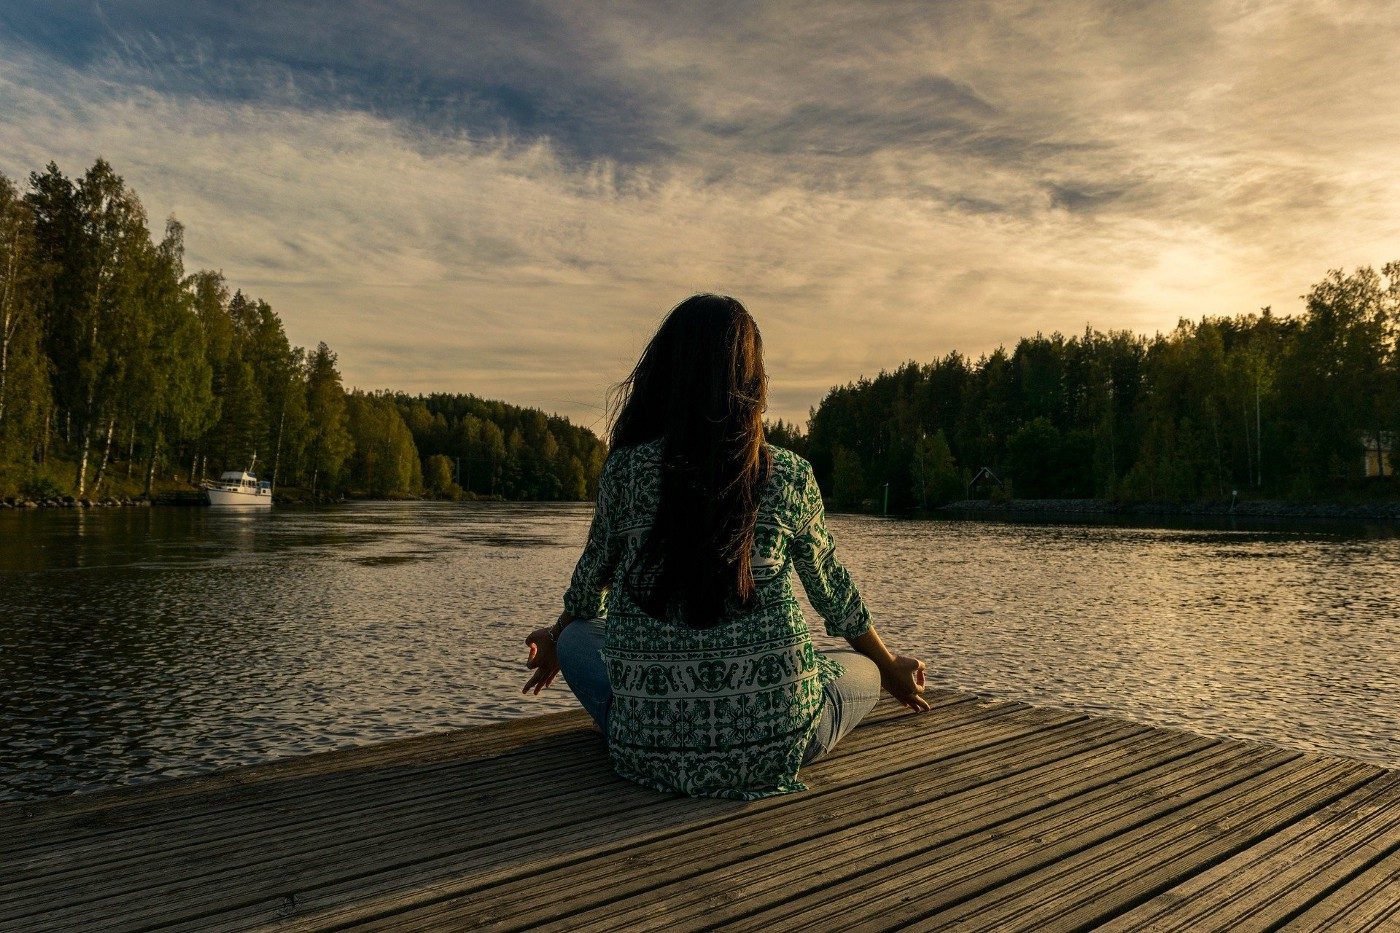 Woman sat meditating in front of scenic view